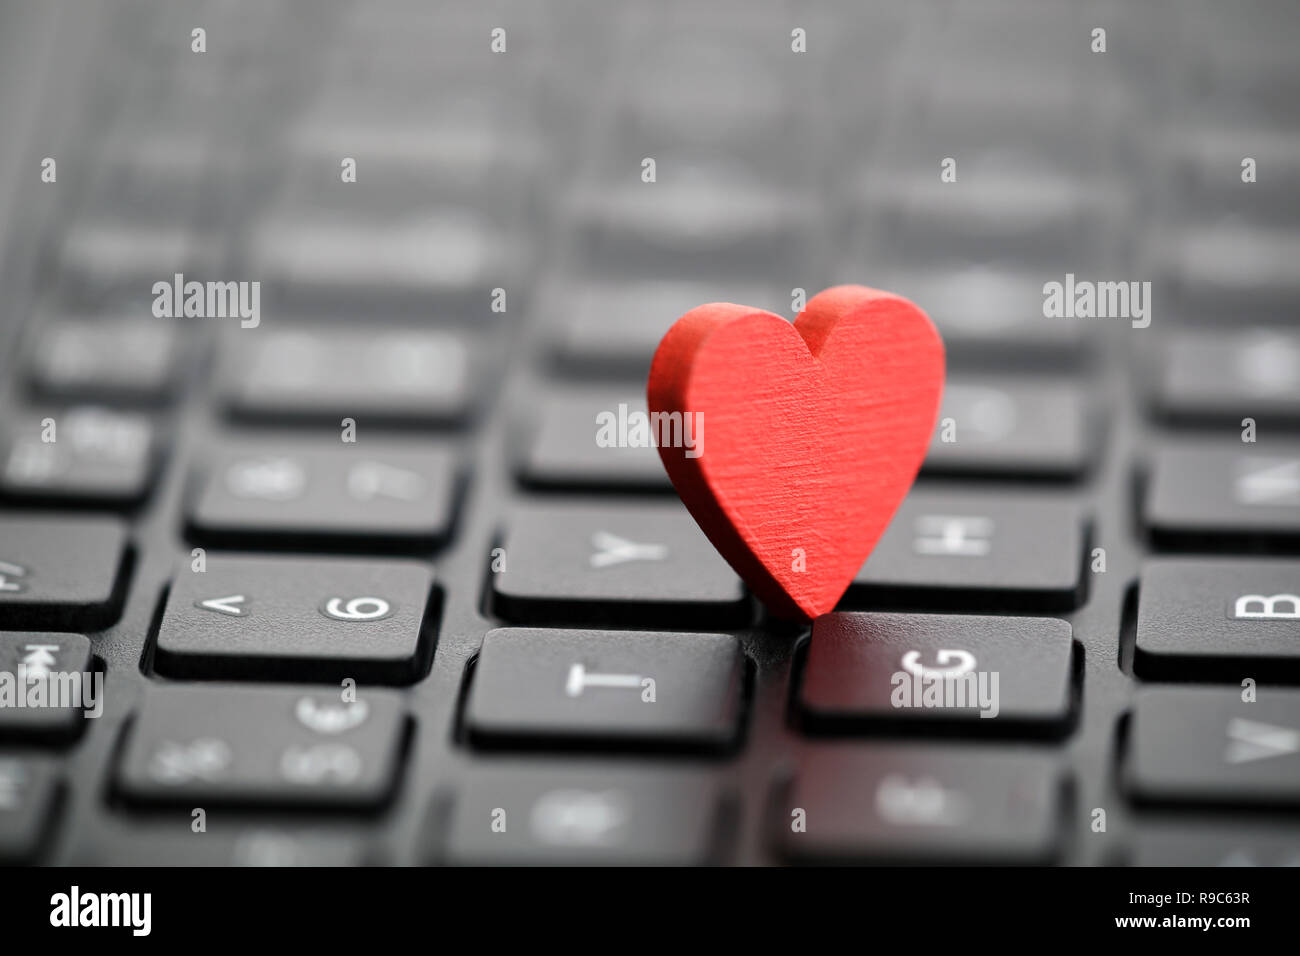 Online-Dating rote Pille